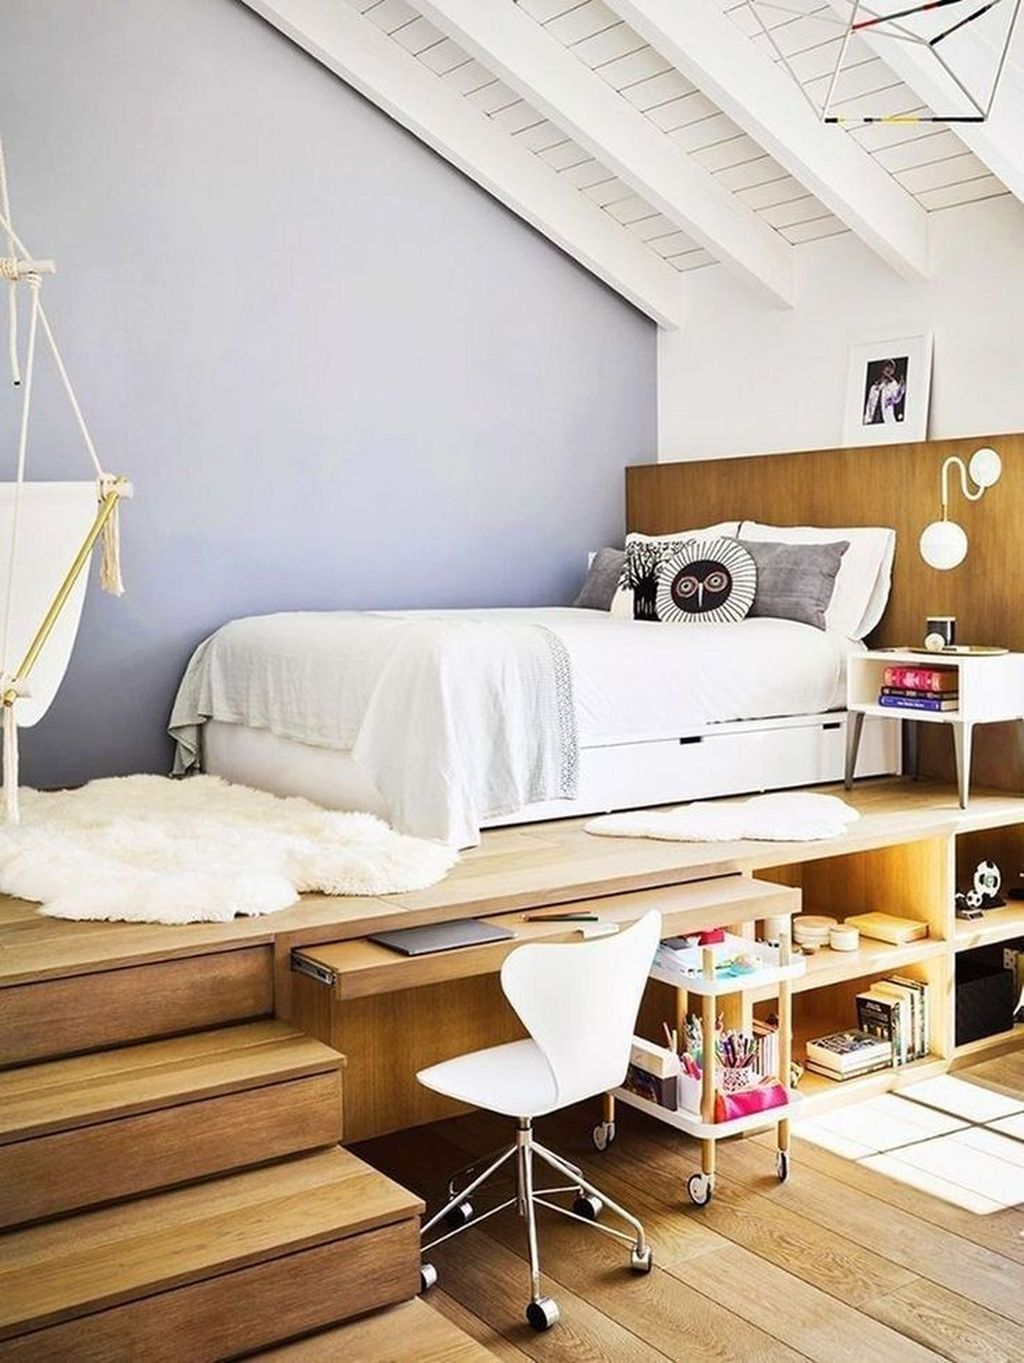 Amazing Attic Bedroom Design Ideas That You Will Like 23 Magzhouse